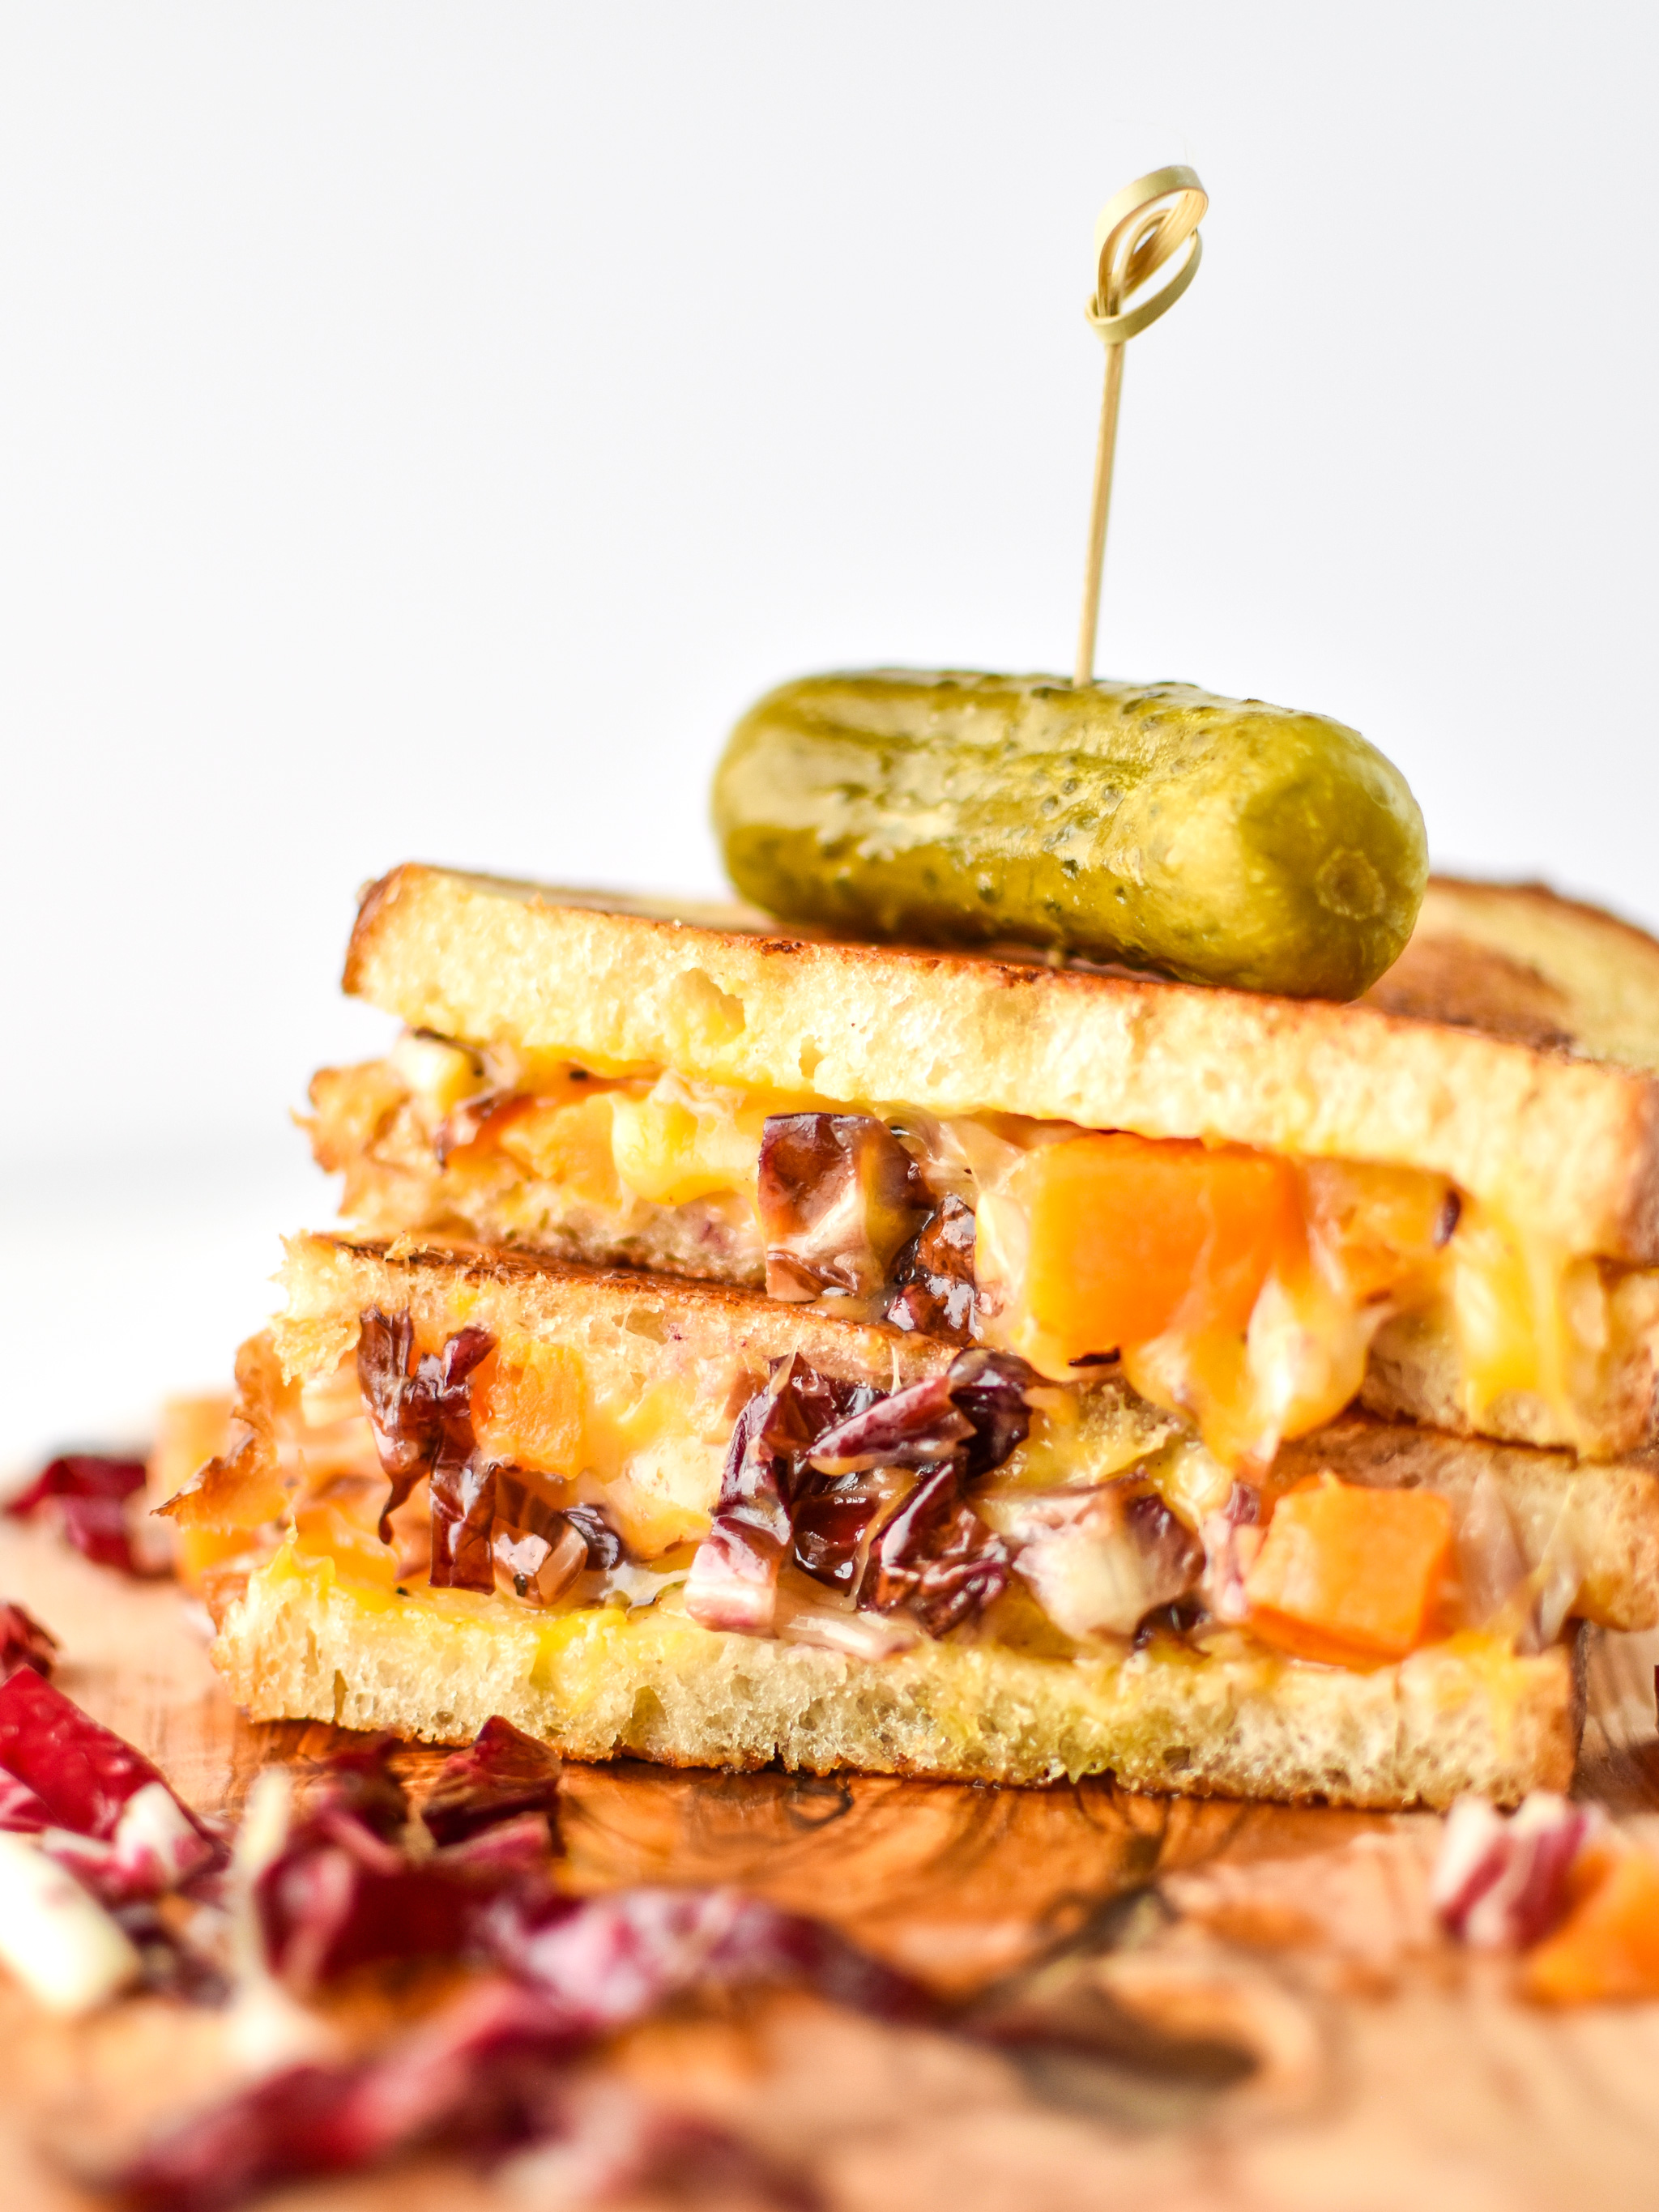 roasted squash salad grilled cheese with a pickle